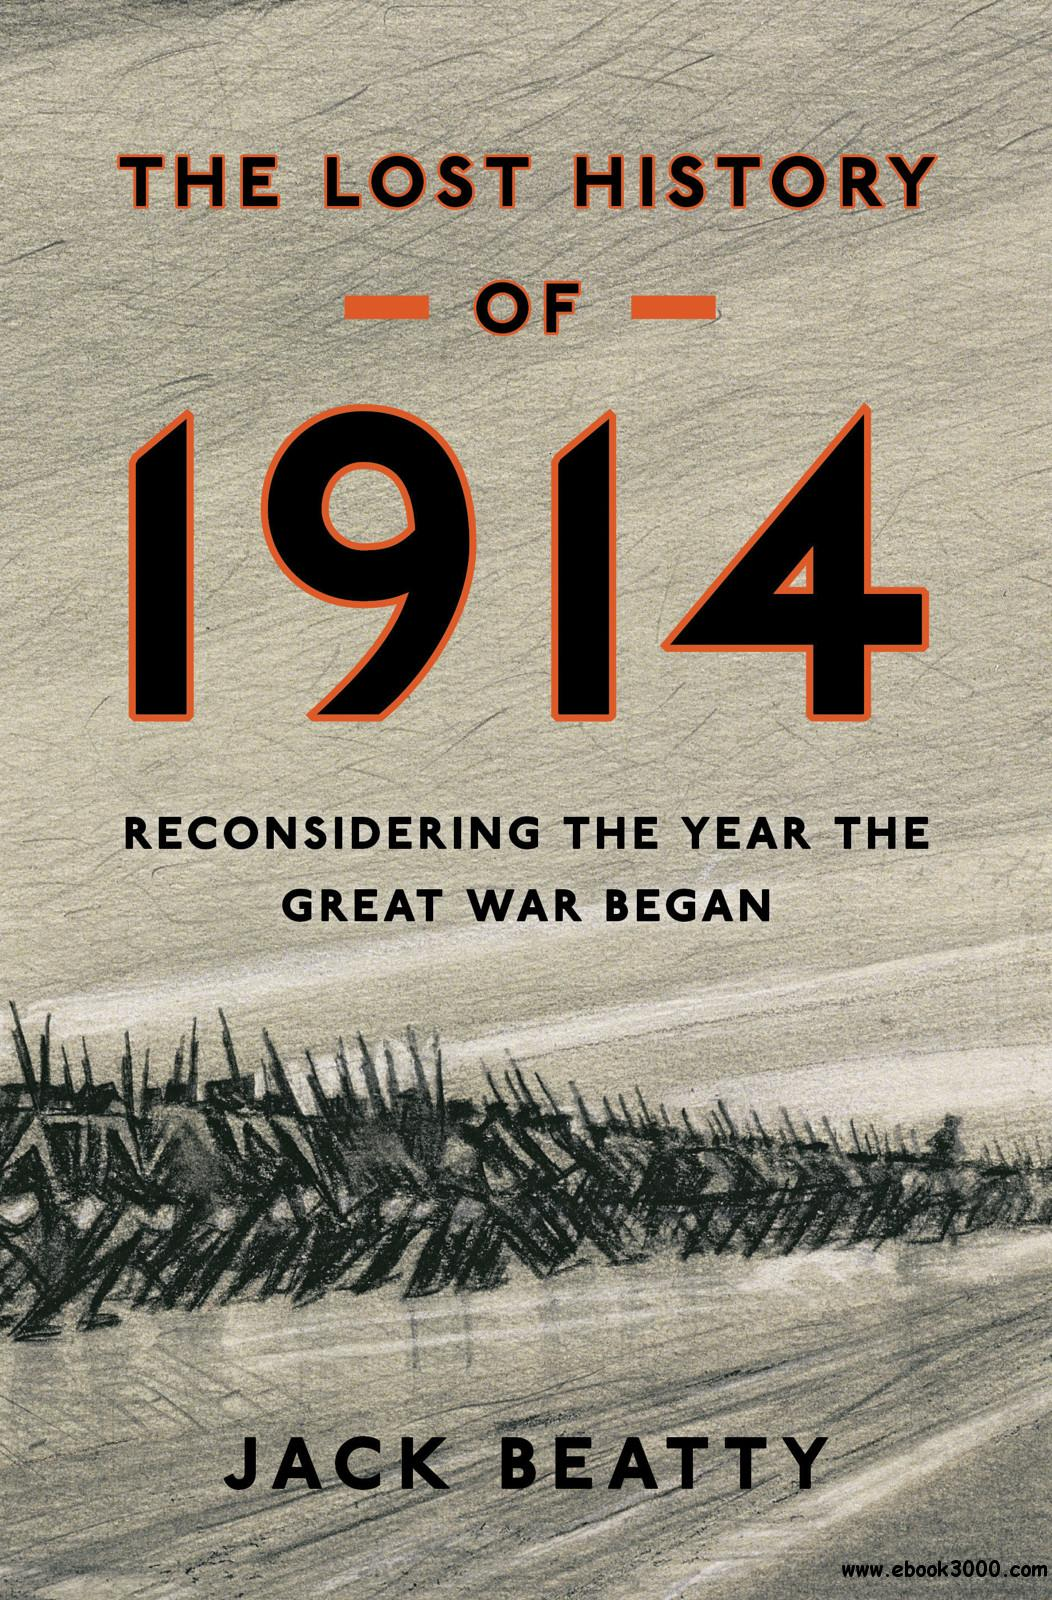 The Lost History of 1914: Reconsidering the Year the Great War Began free download